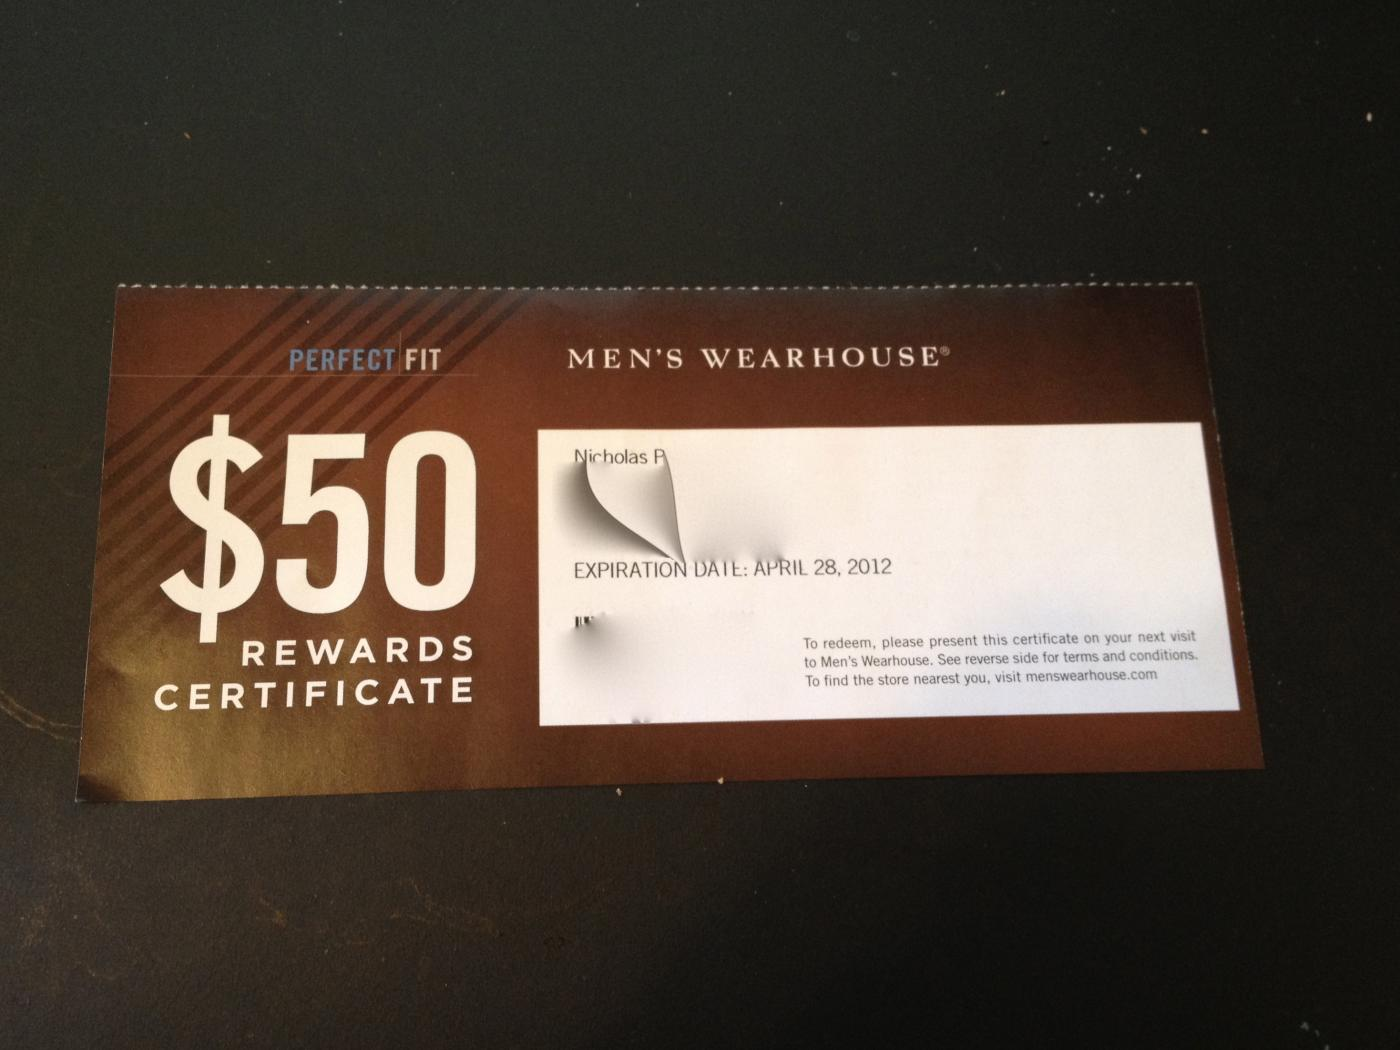 Fs 50 mens wearhouse rewards certificate attached images xflitez Choice Image